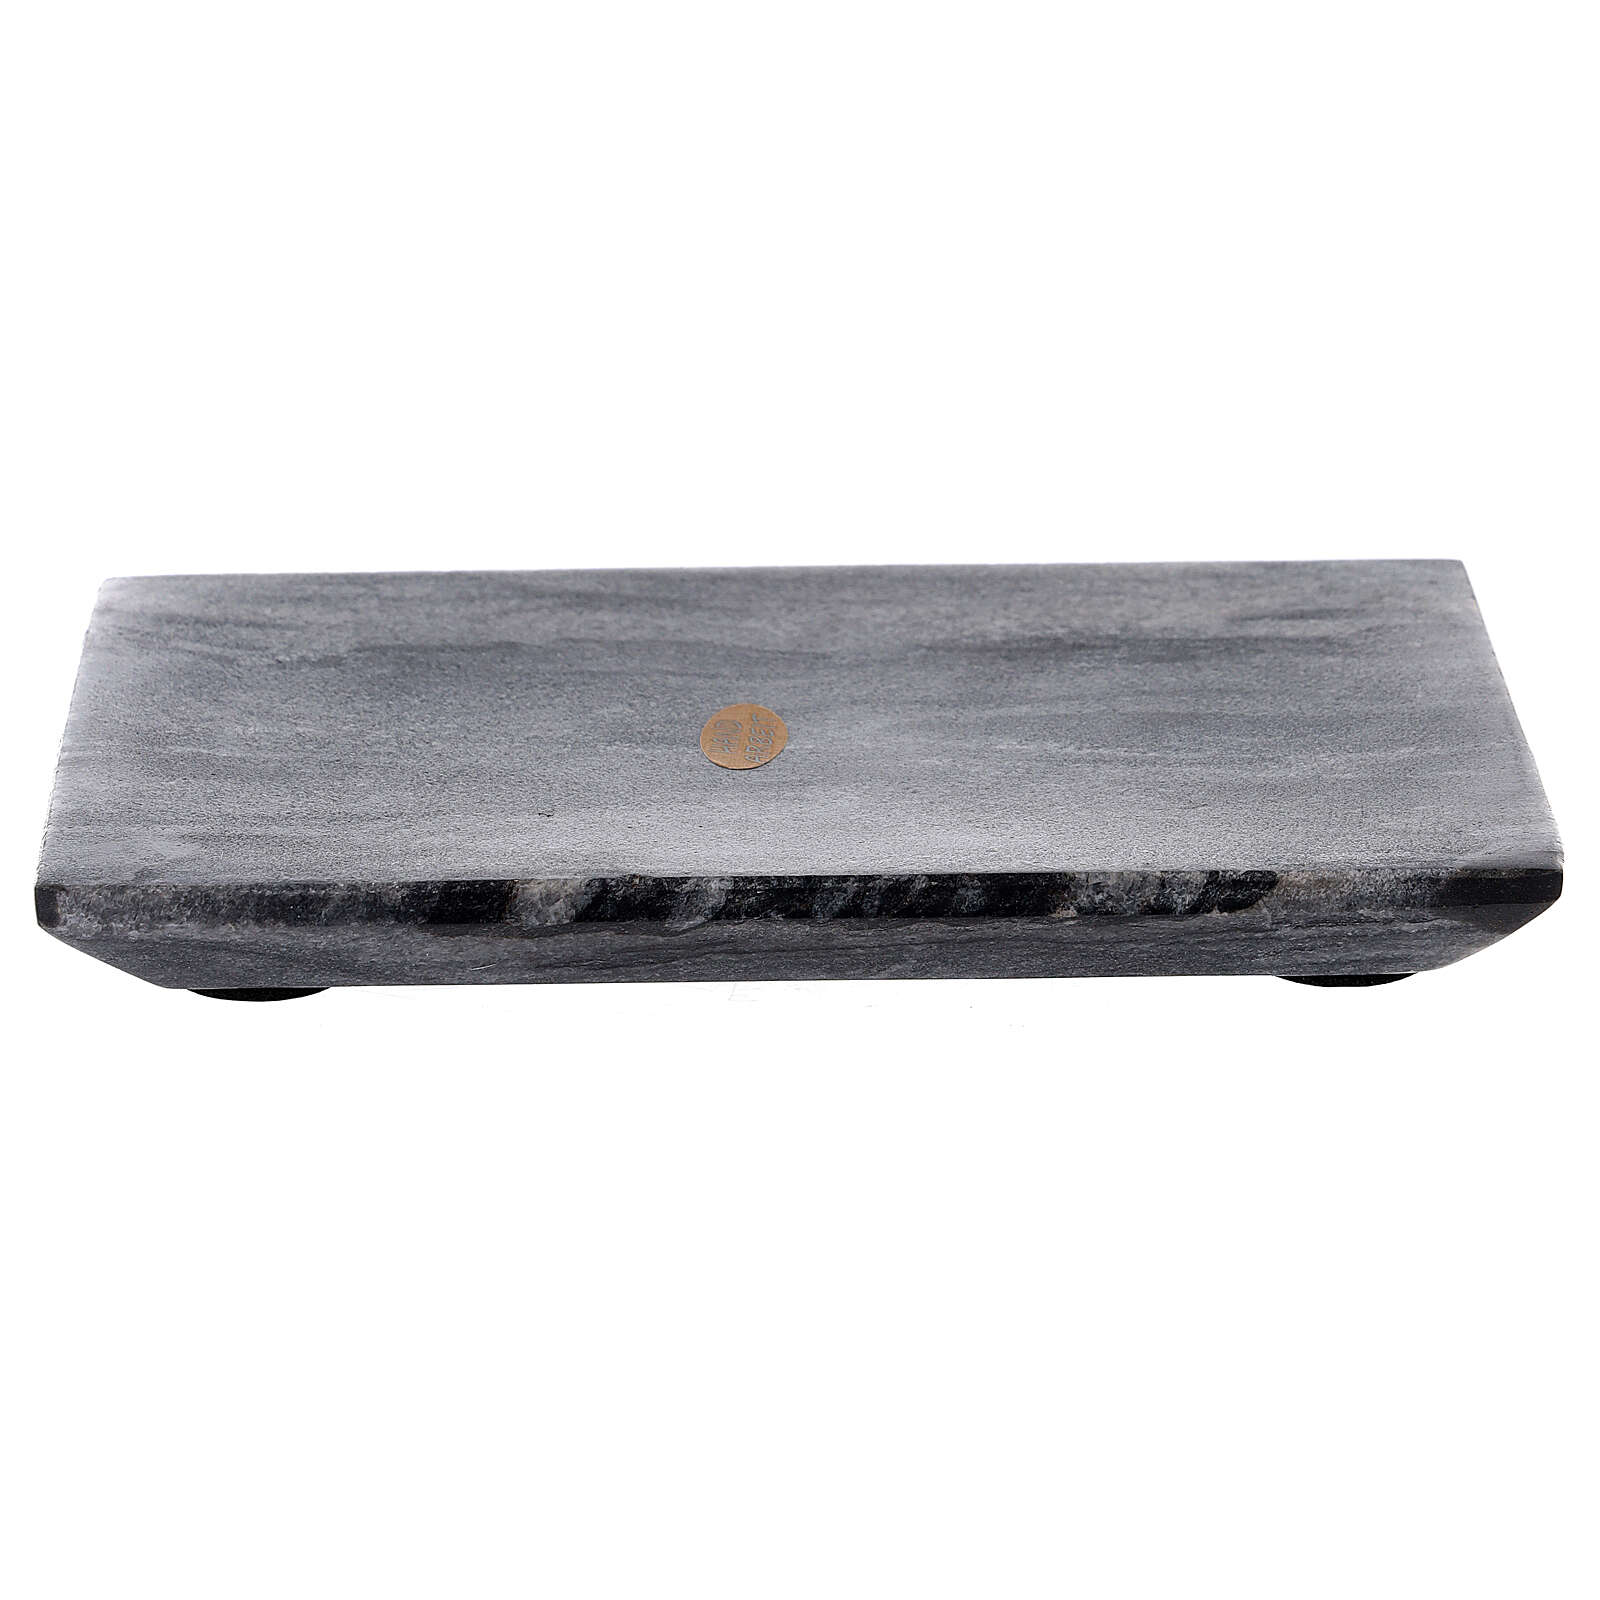 Rectangular candle holder plate of natural stone 6 3/4x4 3/4 in 3